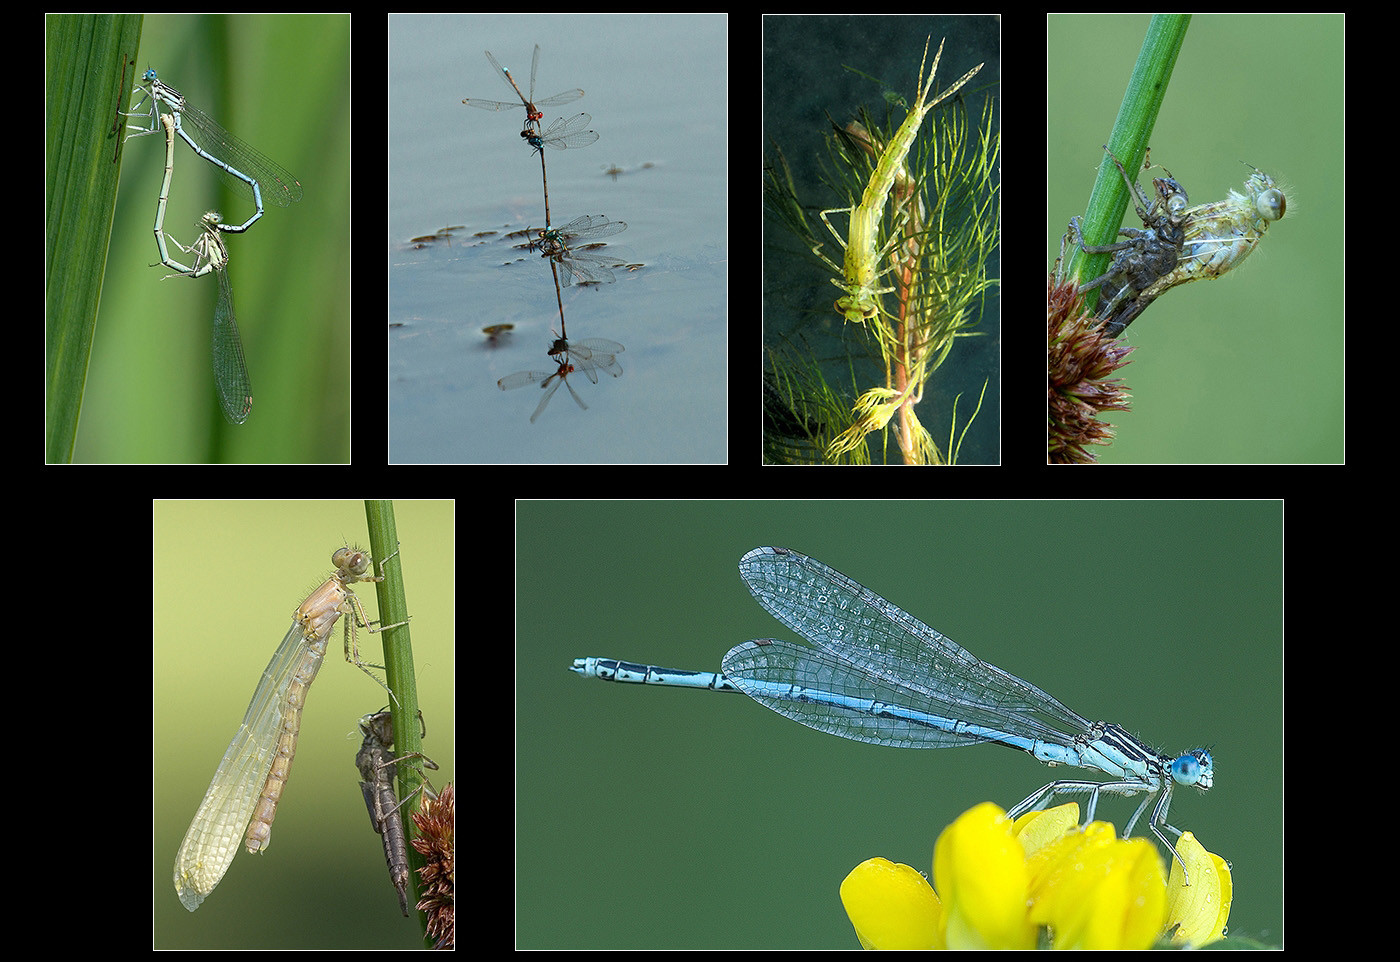 20 LIFE CYCLE OF THE WHITE LEGGED DAMSELFLY by Alan Cork